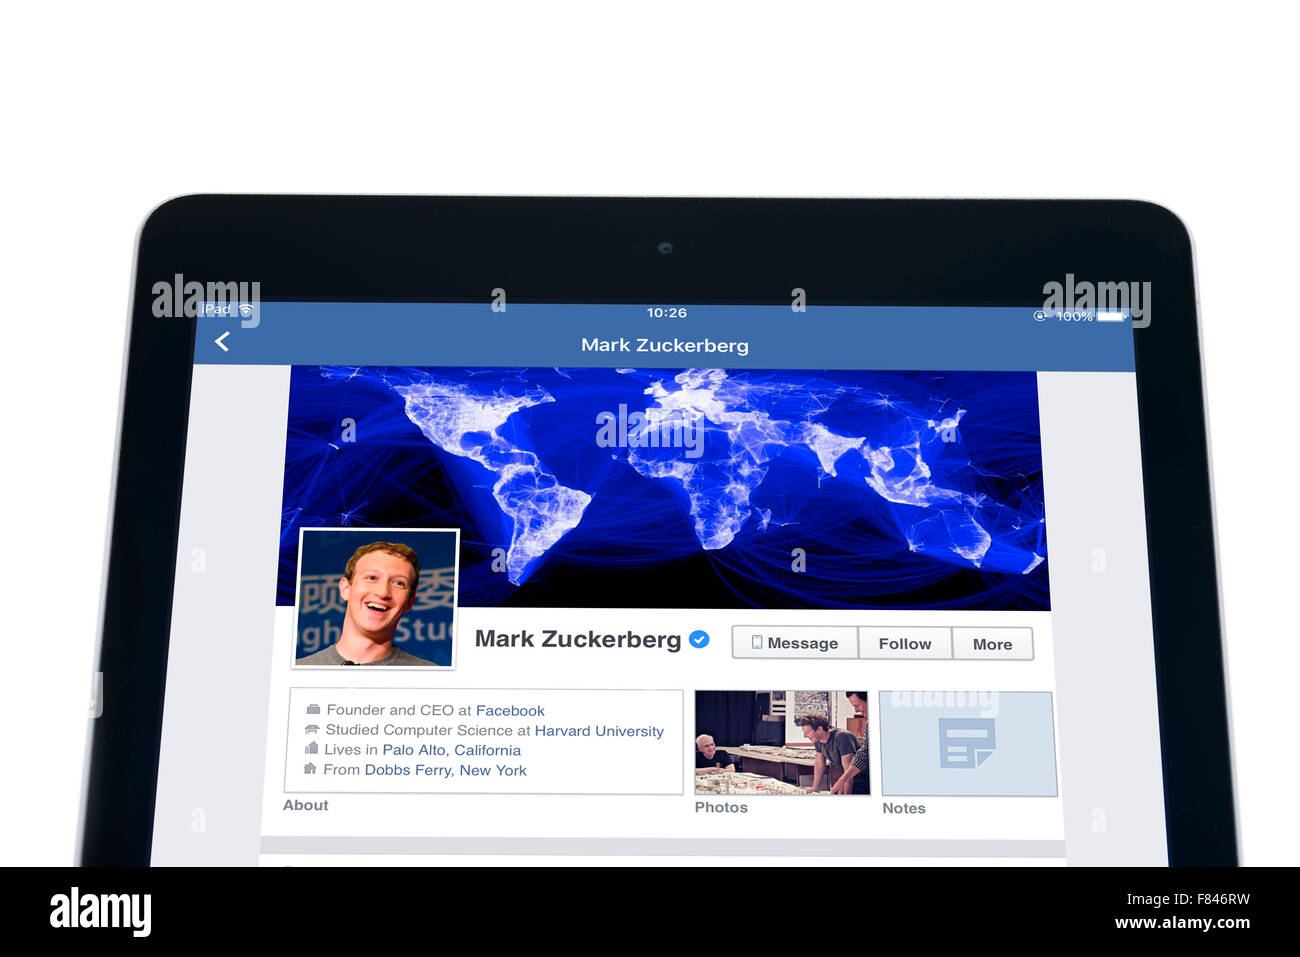 Mark Zuckerberg's website en el Facebook app, visto en un iPad Air Imagen De Stock